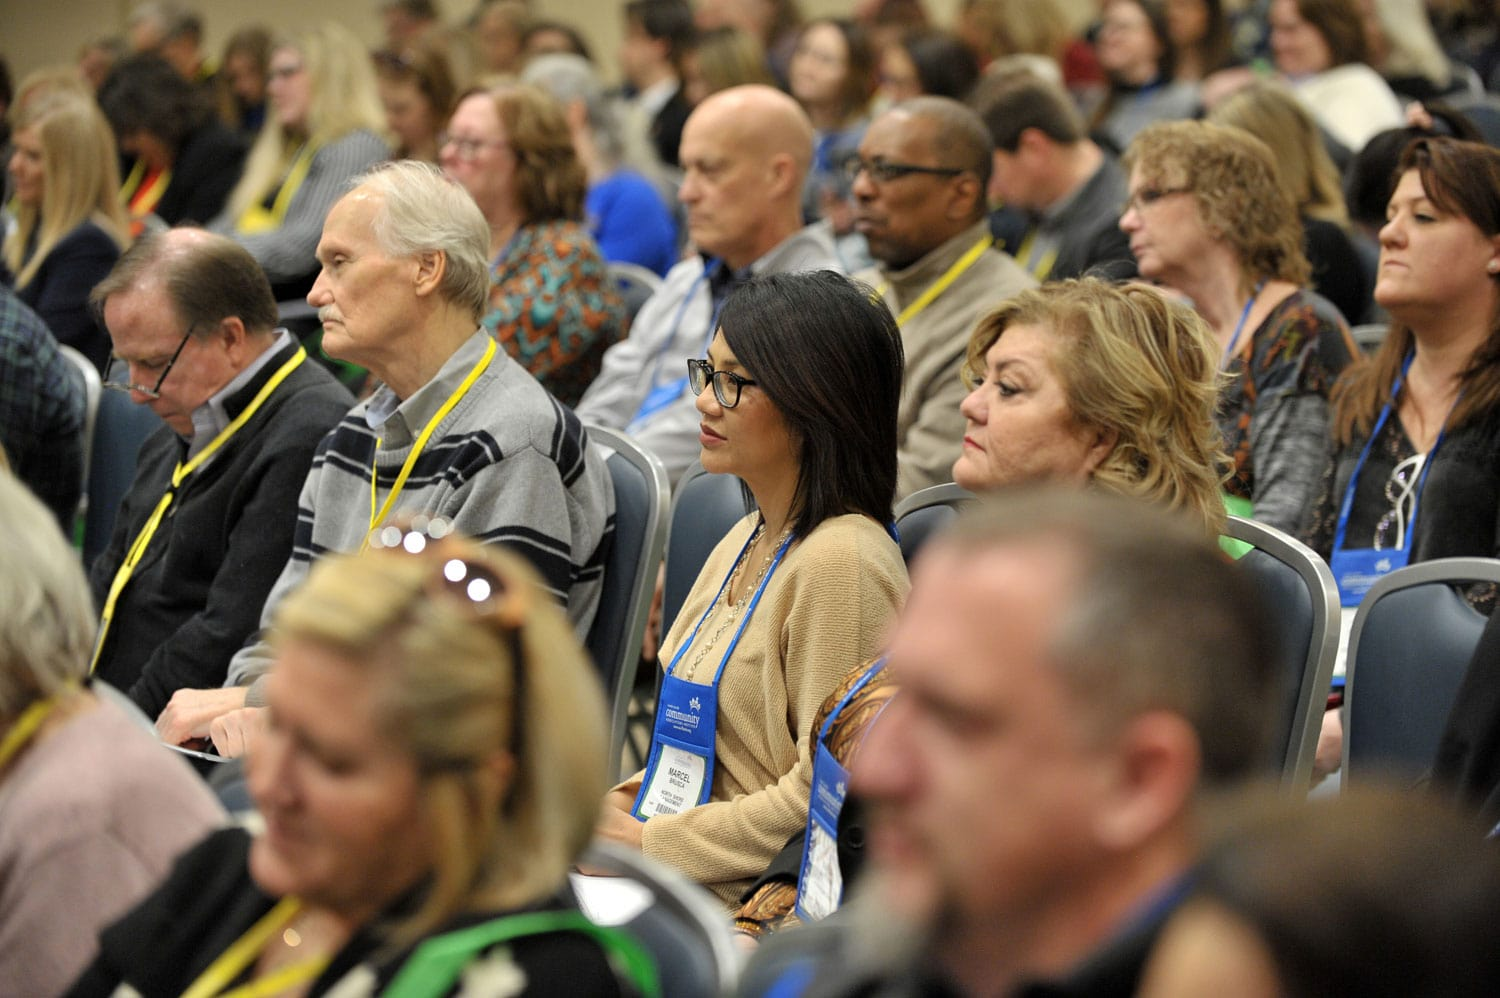 attendees at cai 2020 conference and expo